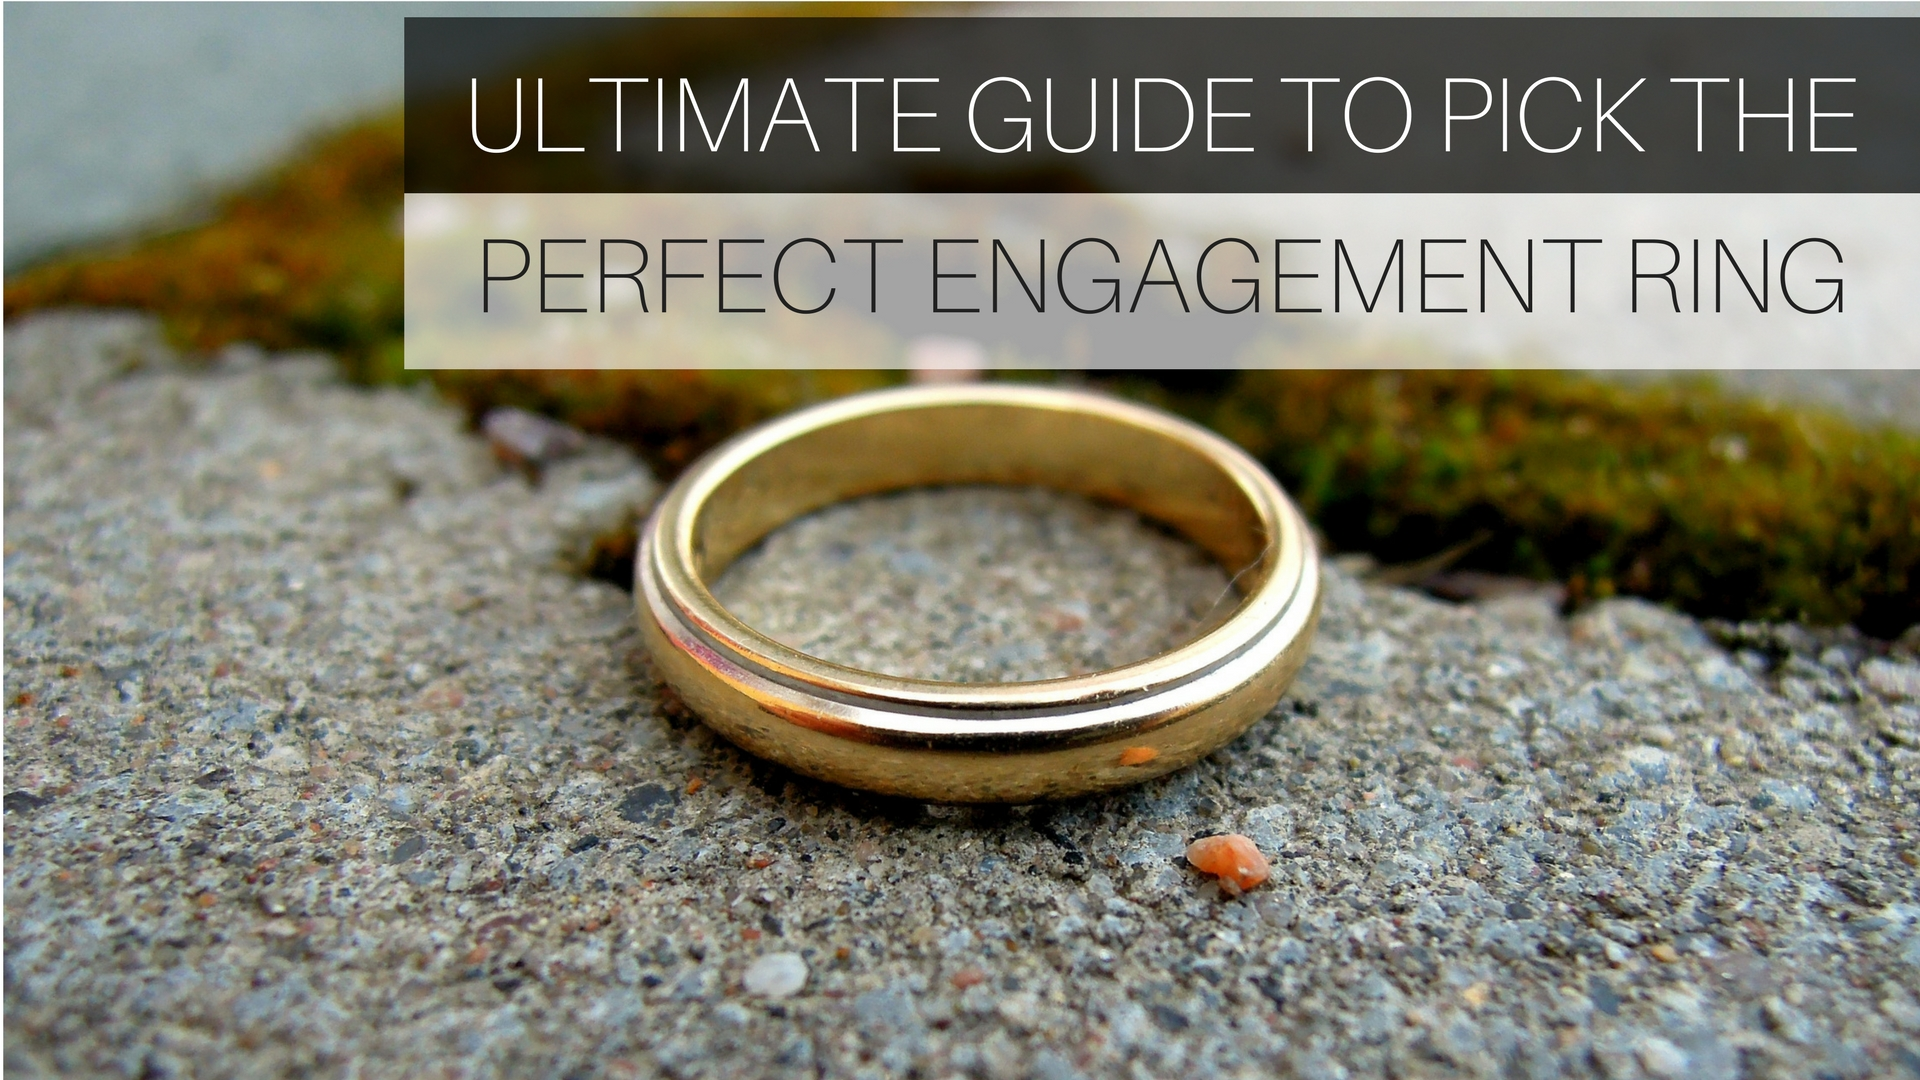 Ultimate Guide To Pick The Perfect Engagement Ring - Dazzlingrock.com